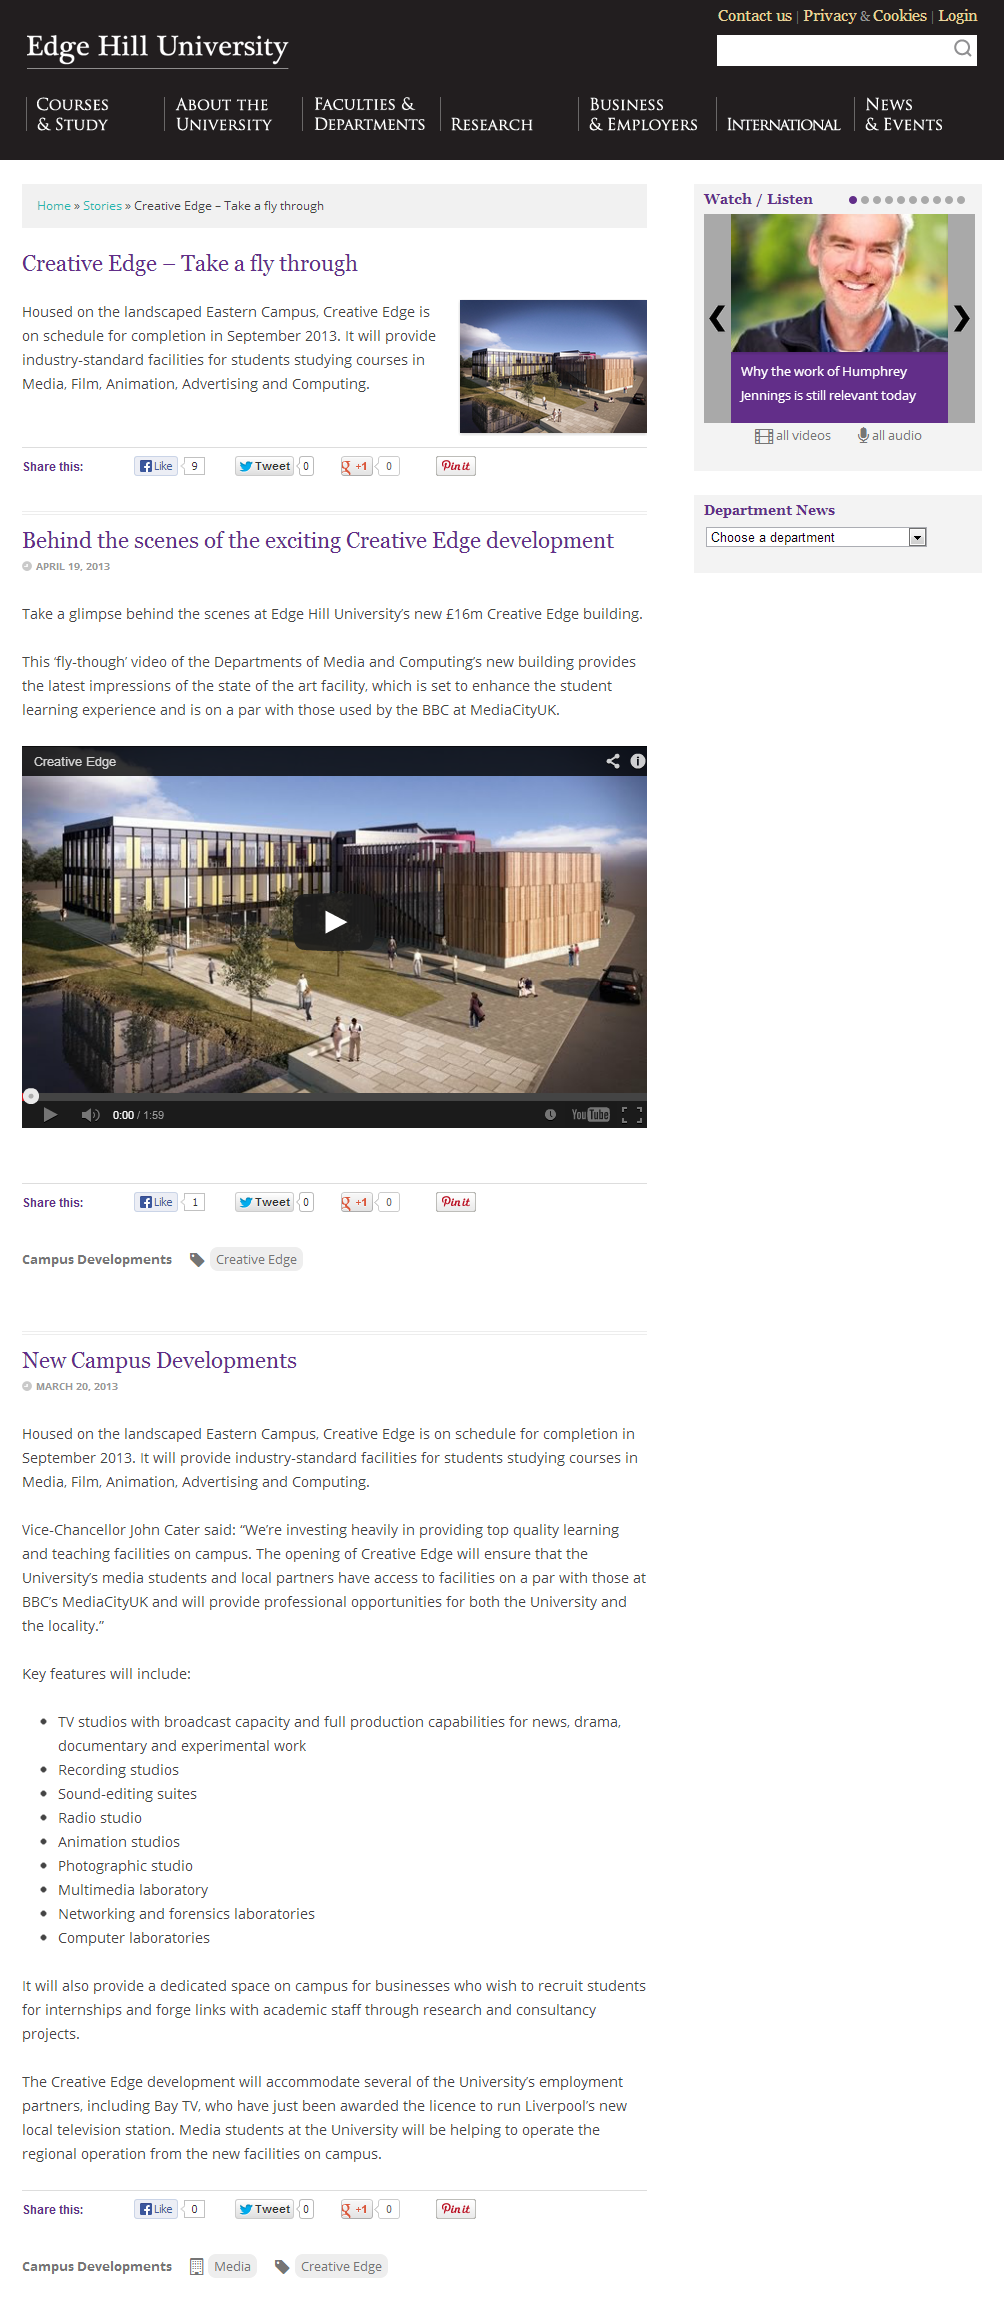 Creative Edge - Take a fly through - News - Edge Hill University(5)